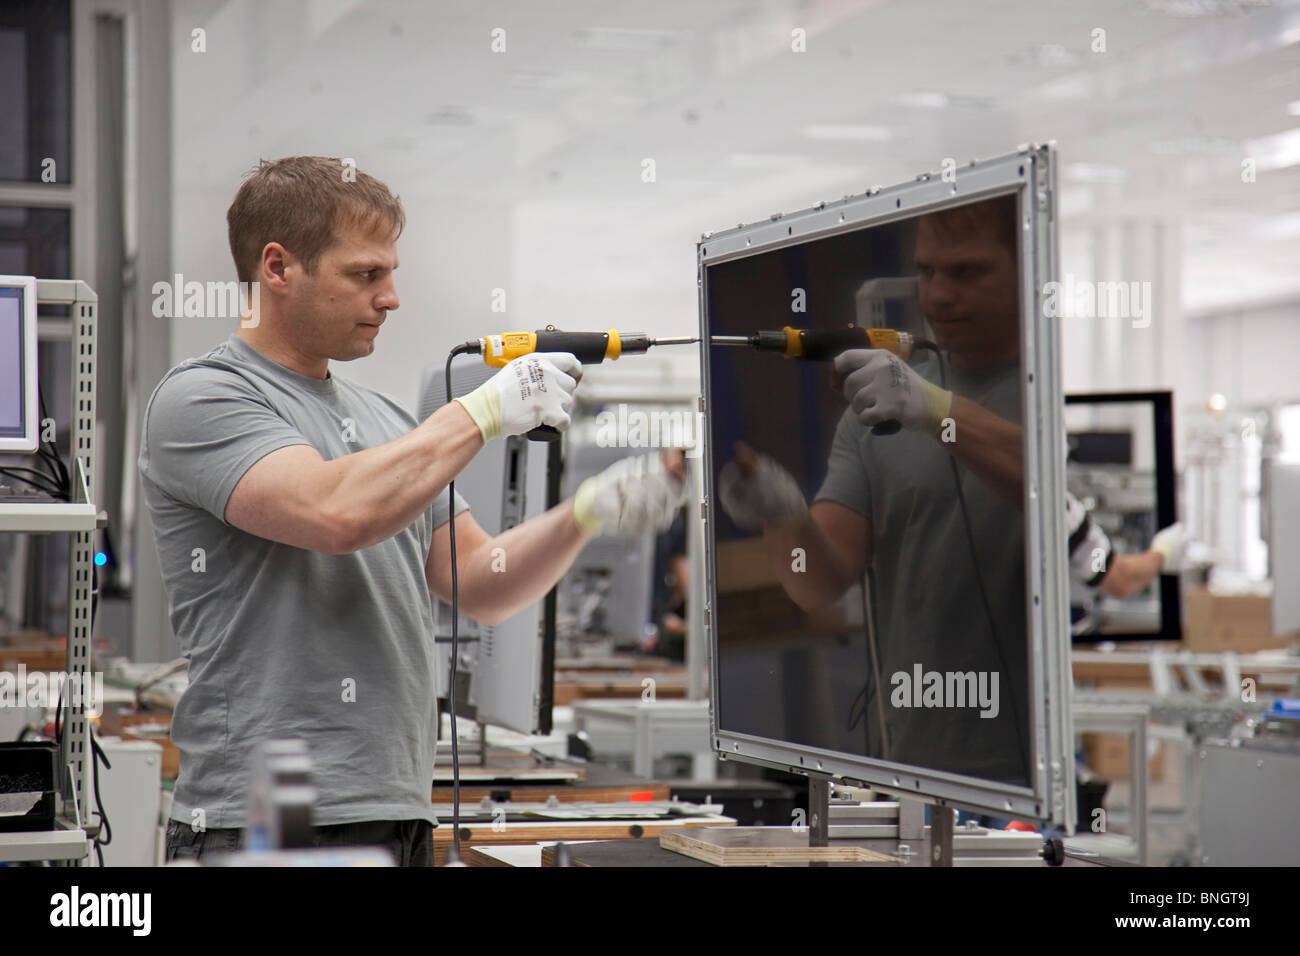 Production of high-value flat screen LCD television sets by Loewe AG, Kronach, Germany - Stock Image